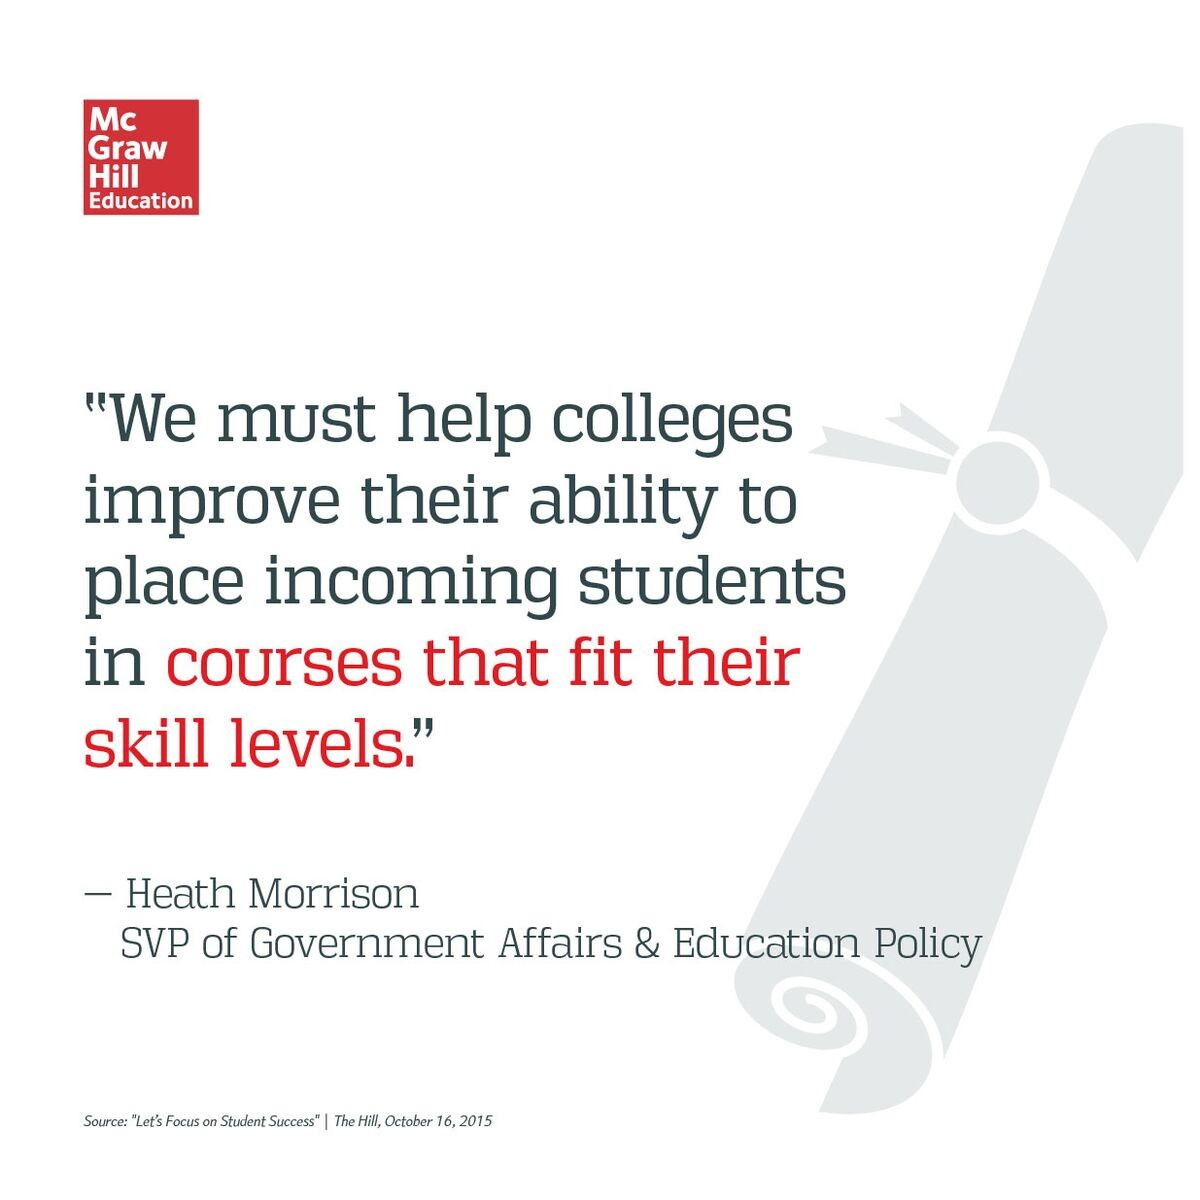 health-morrison-the-hill-student-success